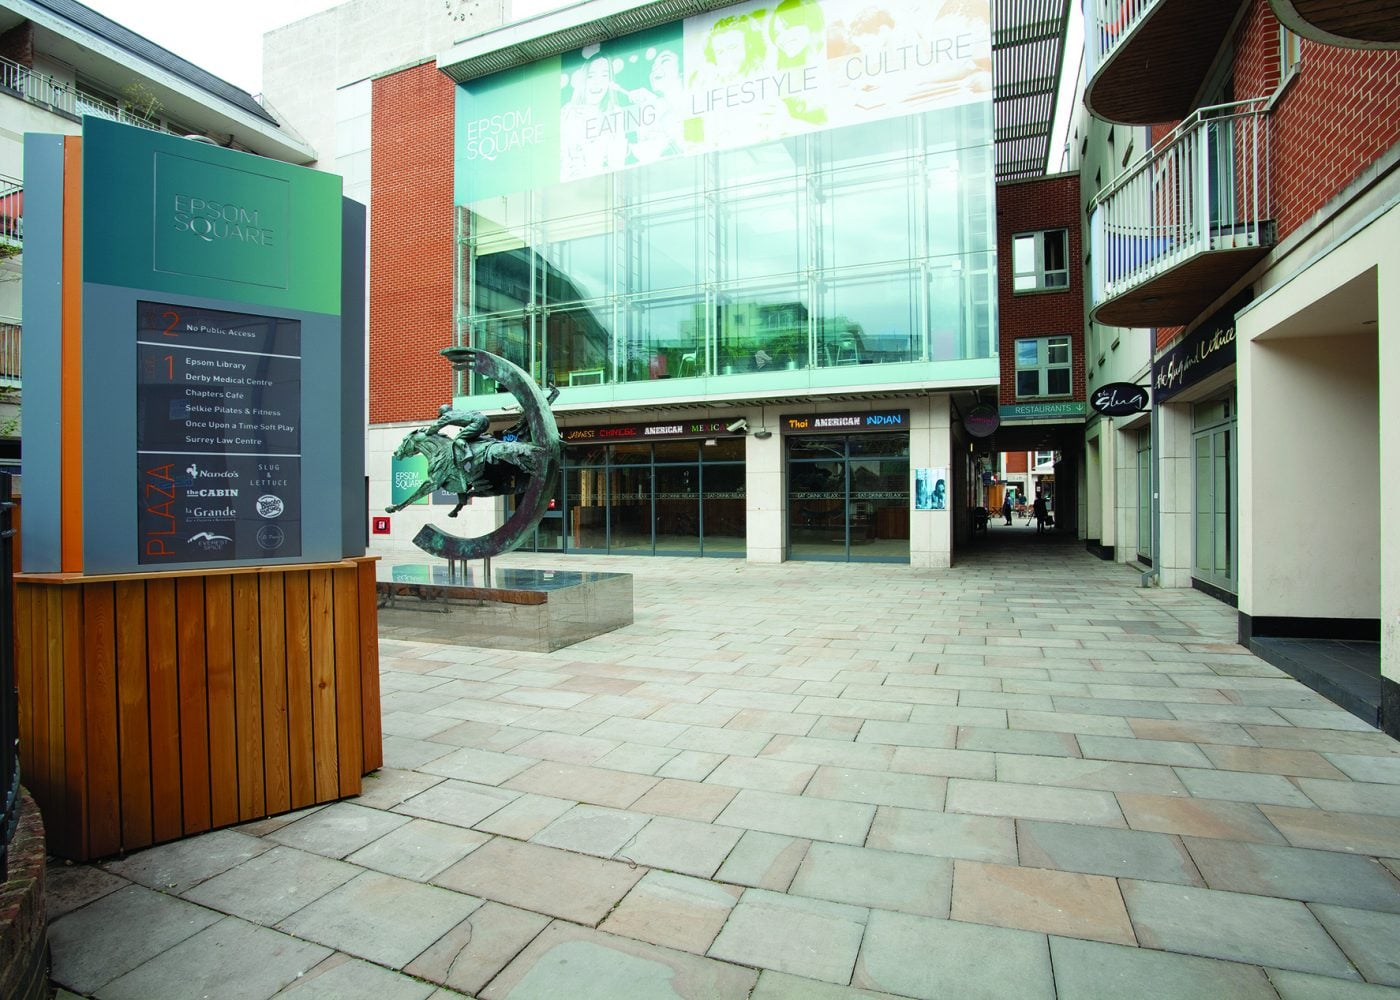 Exterior of Epsom Square entrance with horse riding sculpture and signage